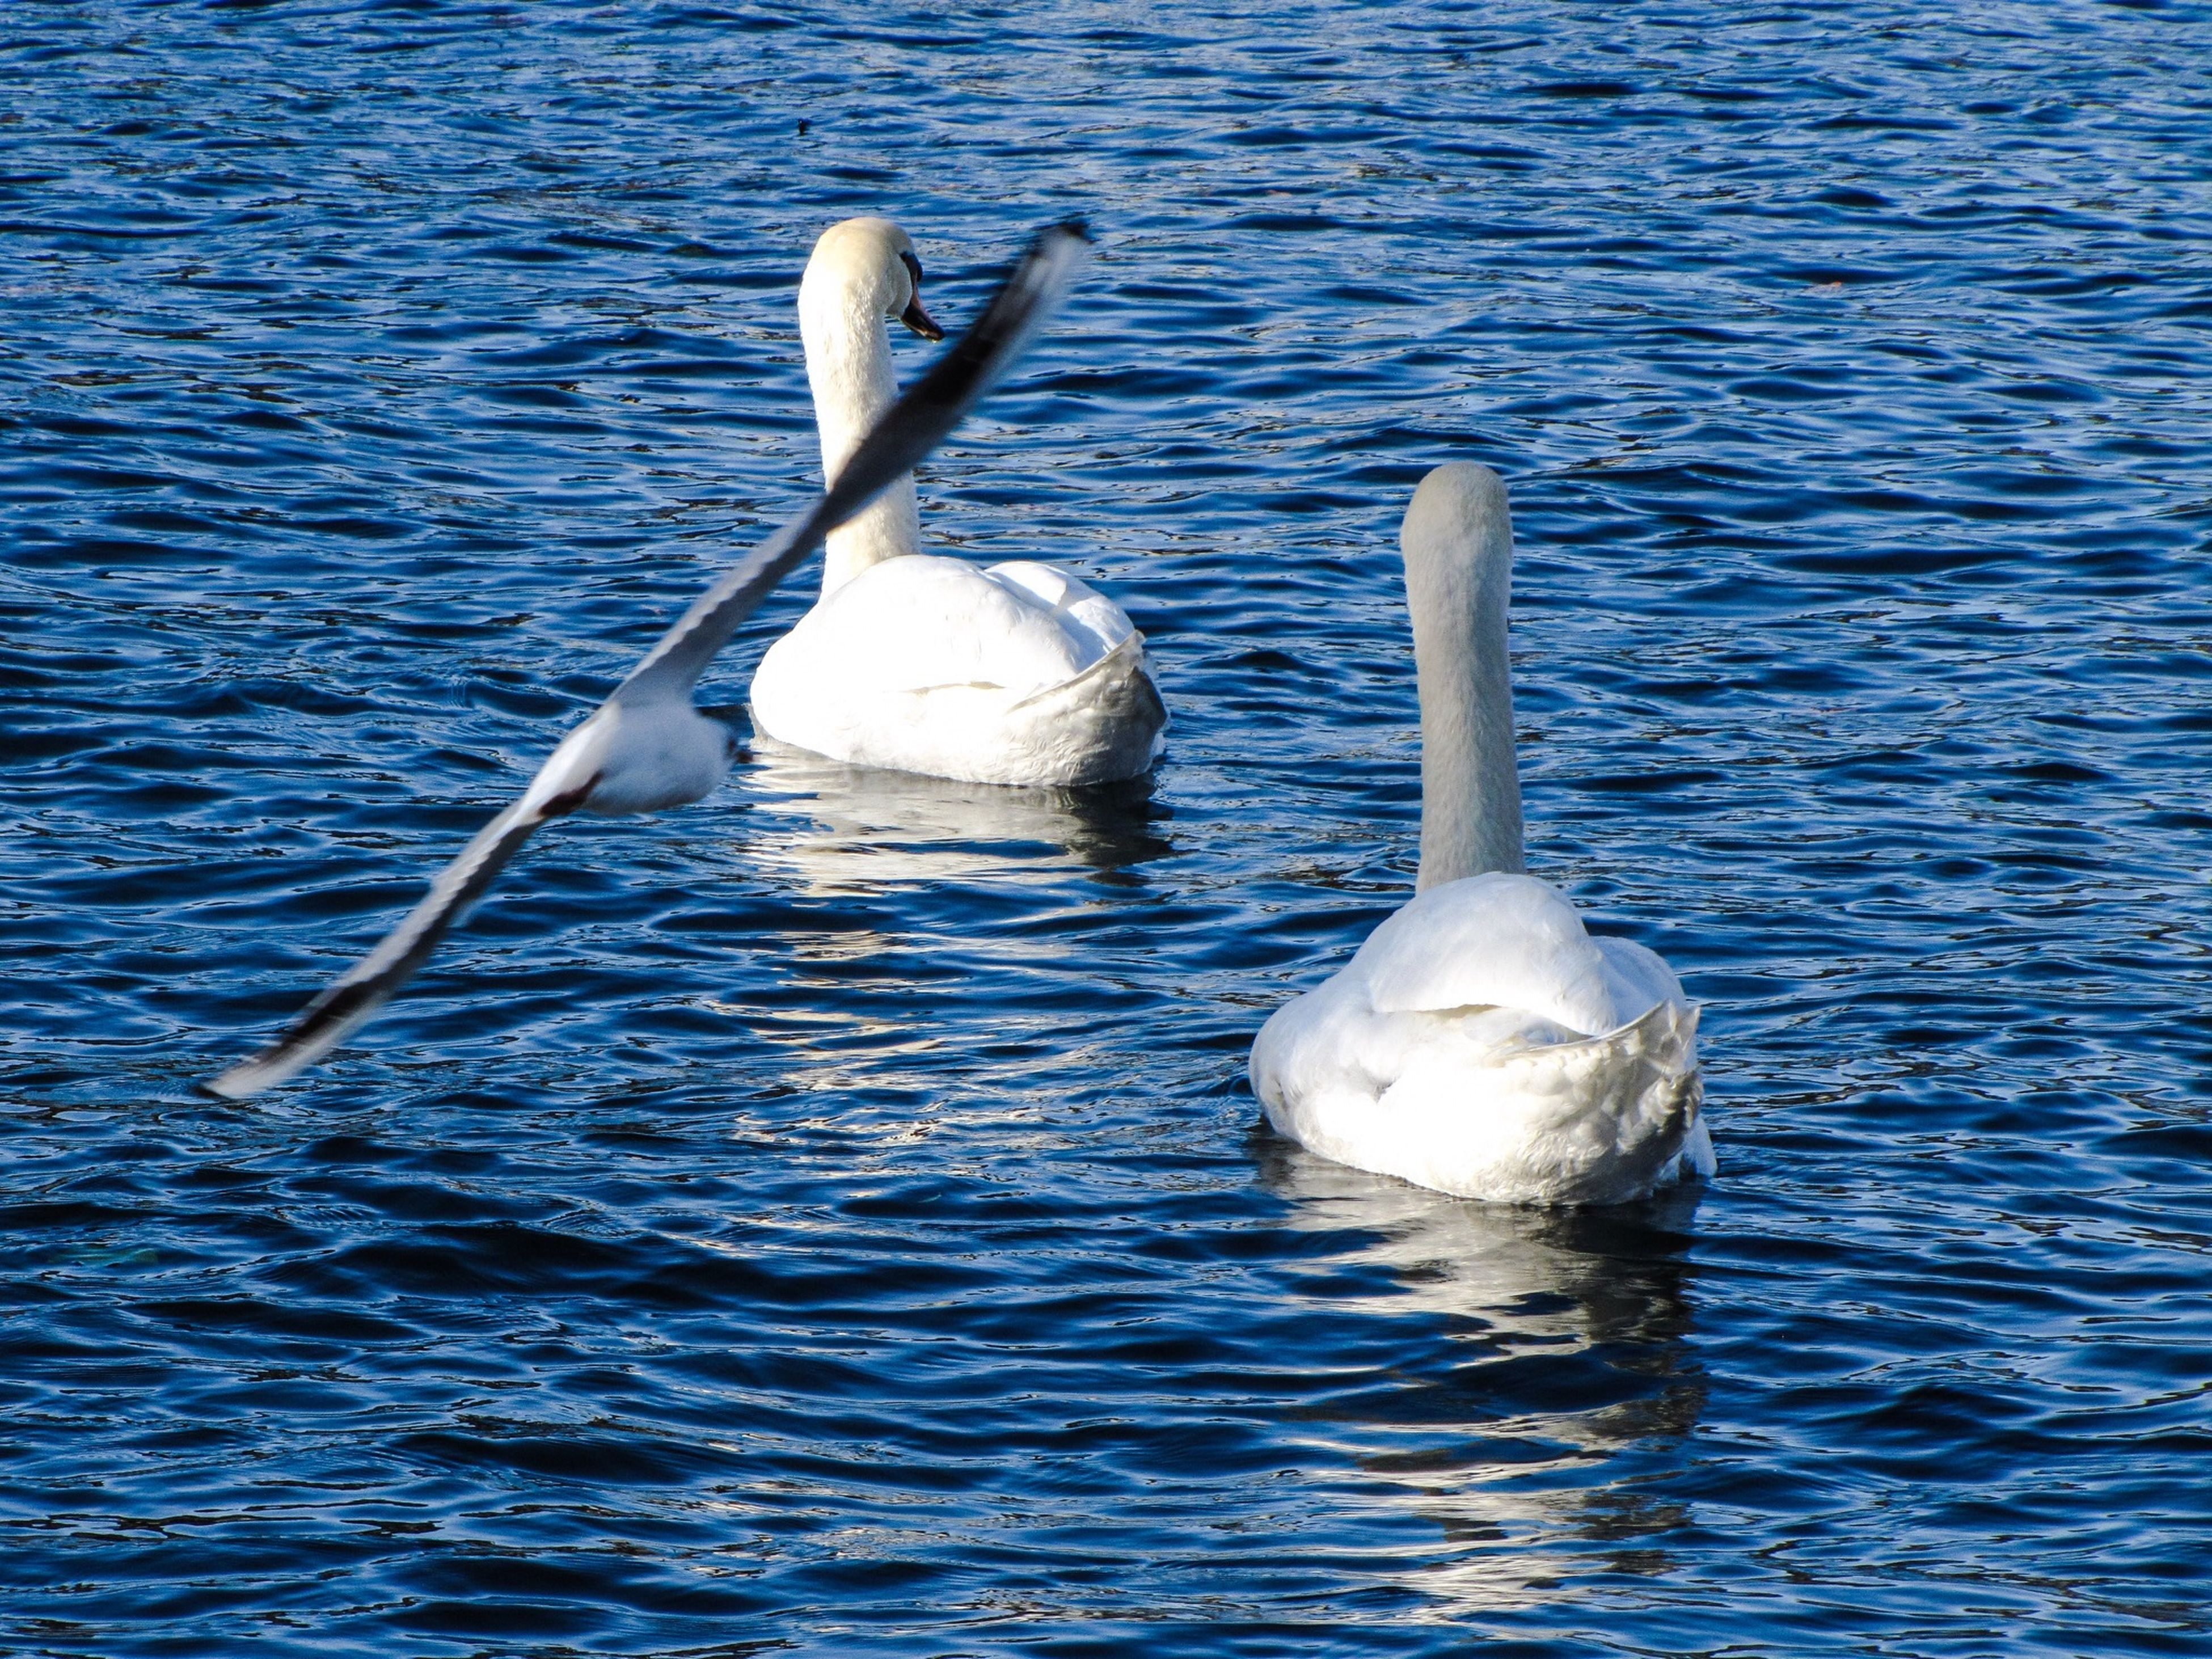 Dream on, dream on / There's nothing wrong / If you dream on, dream on / Of being a swan... Taking Photos Enjoying Life Hello World Popular Photos